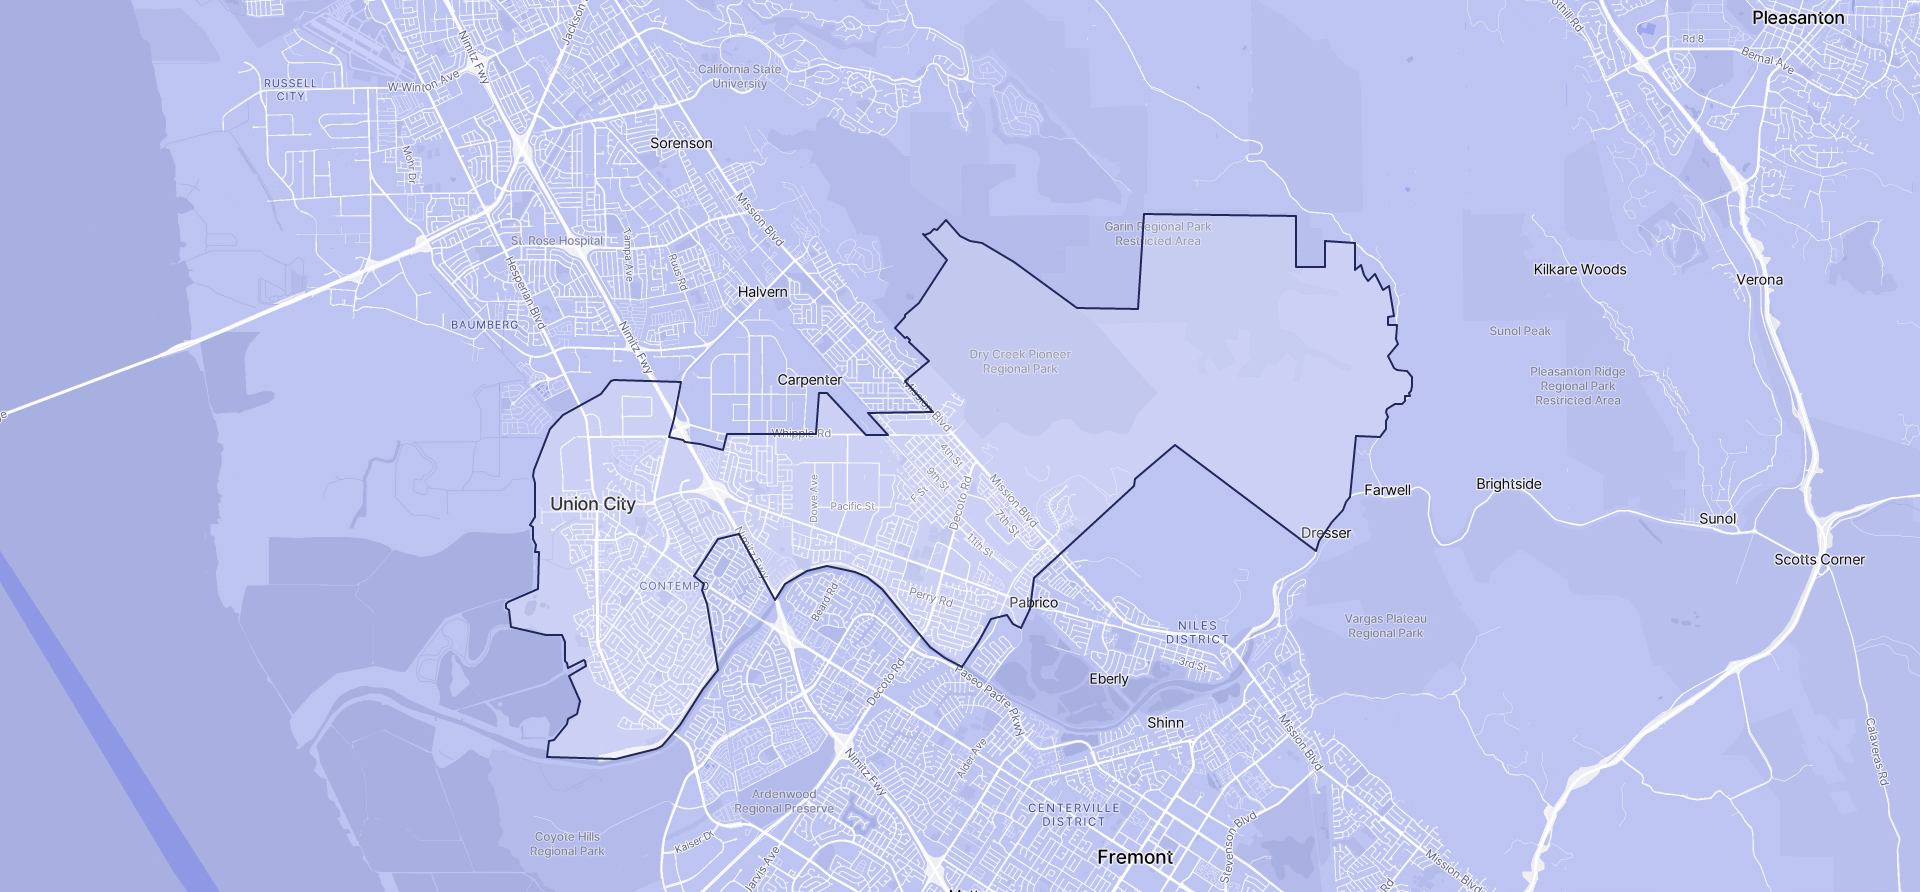 Image of Union City boundaries on a map.